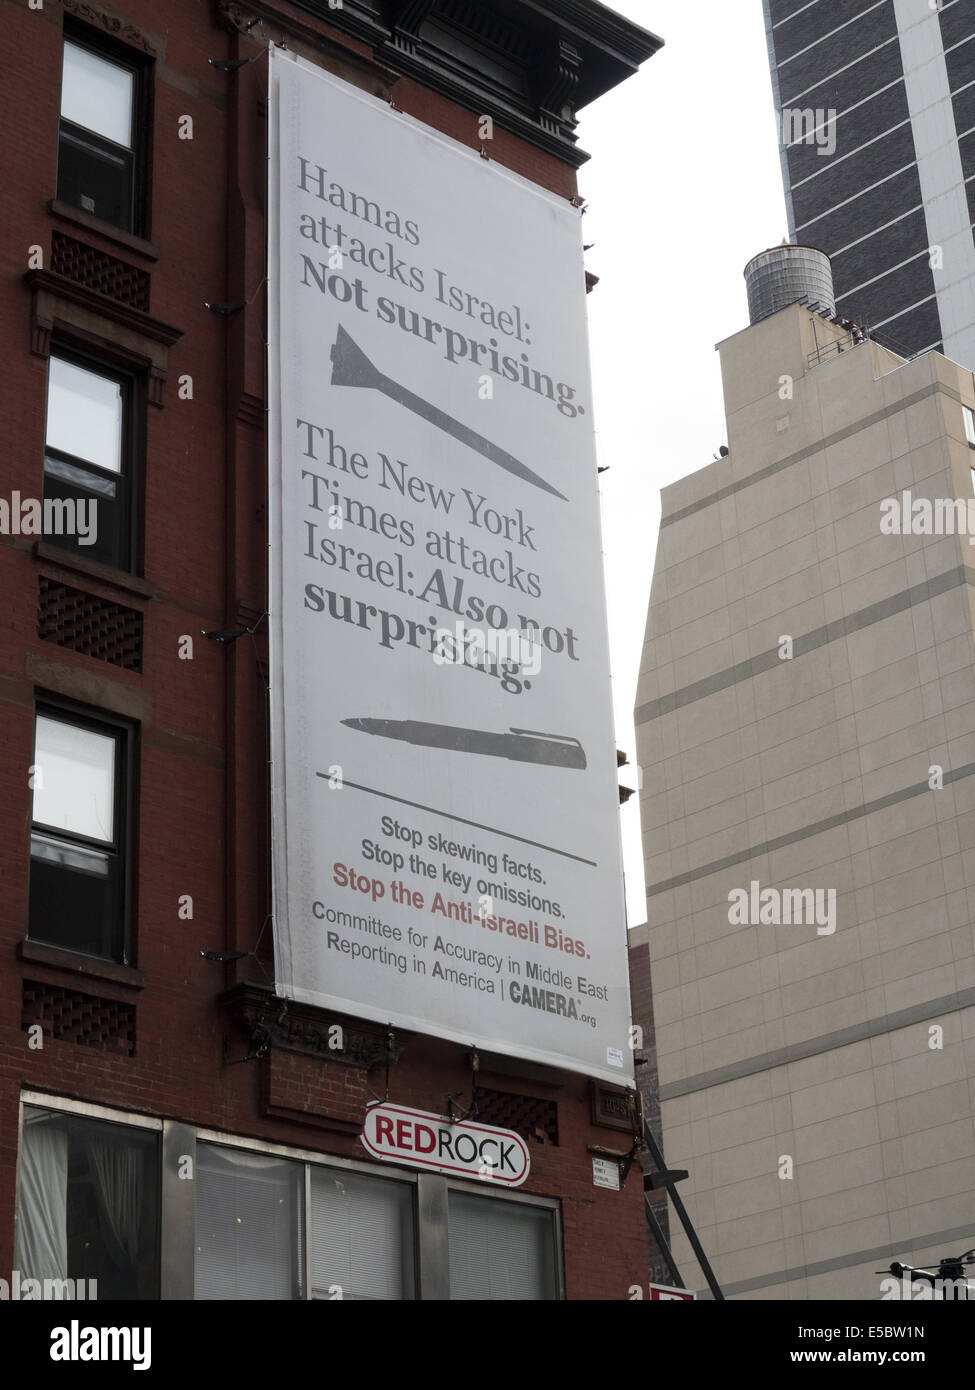 USA: NYC, NY. Sign on building across from The New York Times newspaper protests its alleged Anti-Israel bias, 2014. - Stock Image